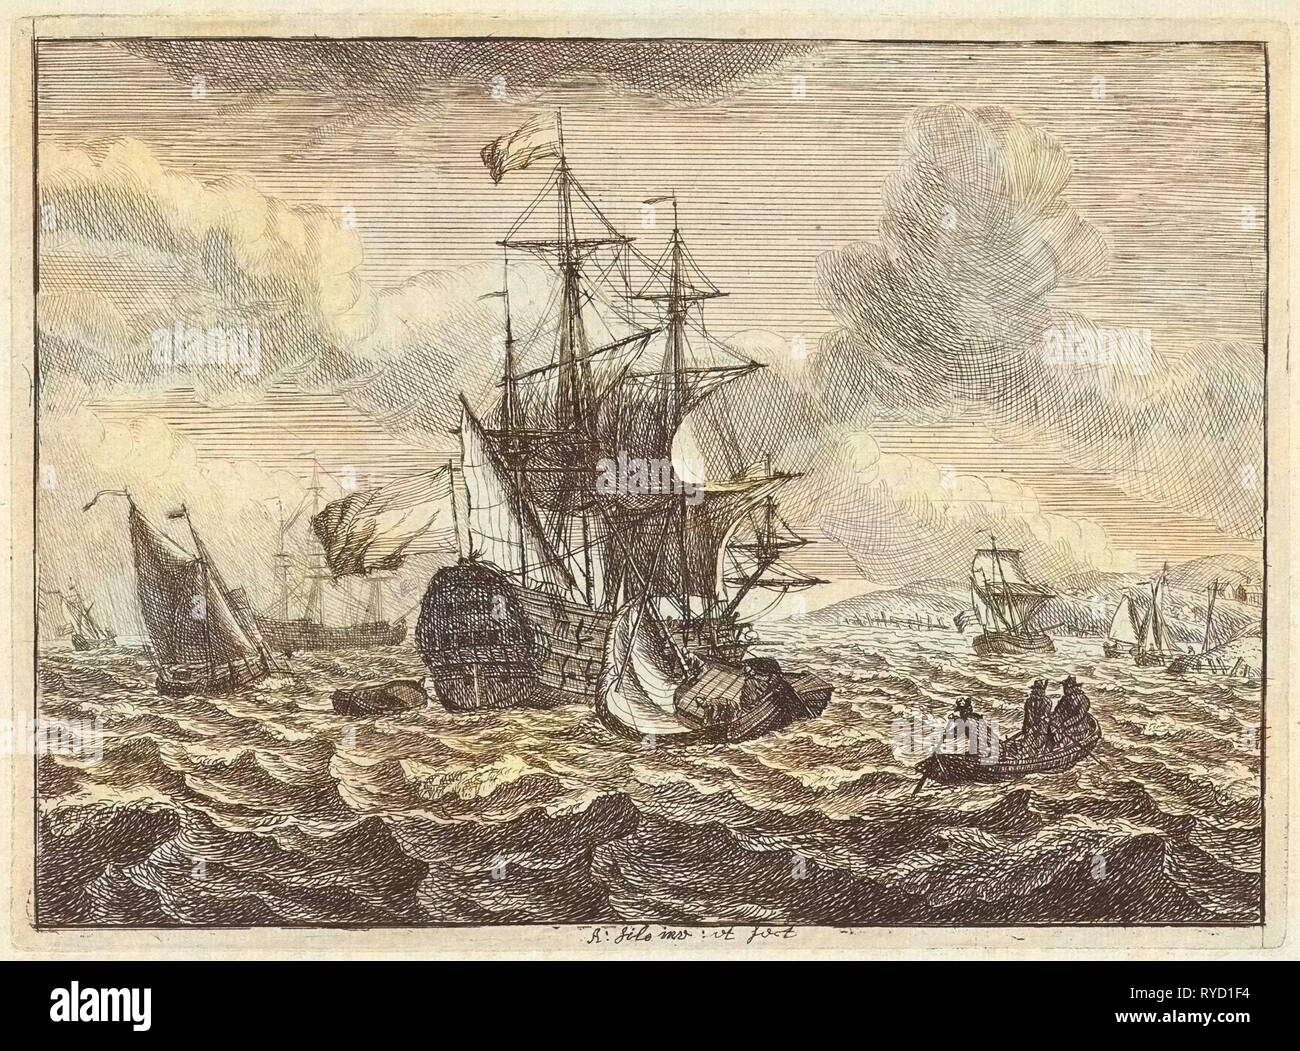 Seascapes with boats and rowing boat, Adam Silo, 1689-1760 - Stock Image